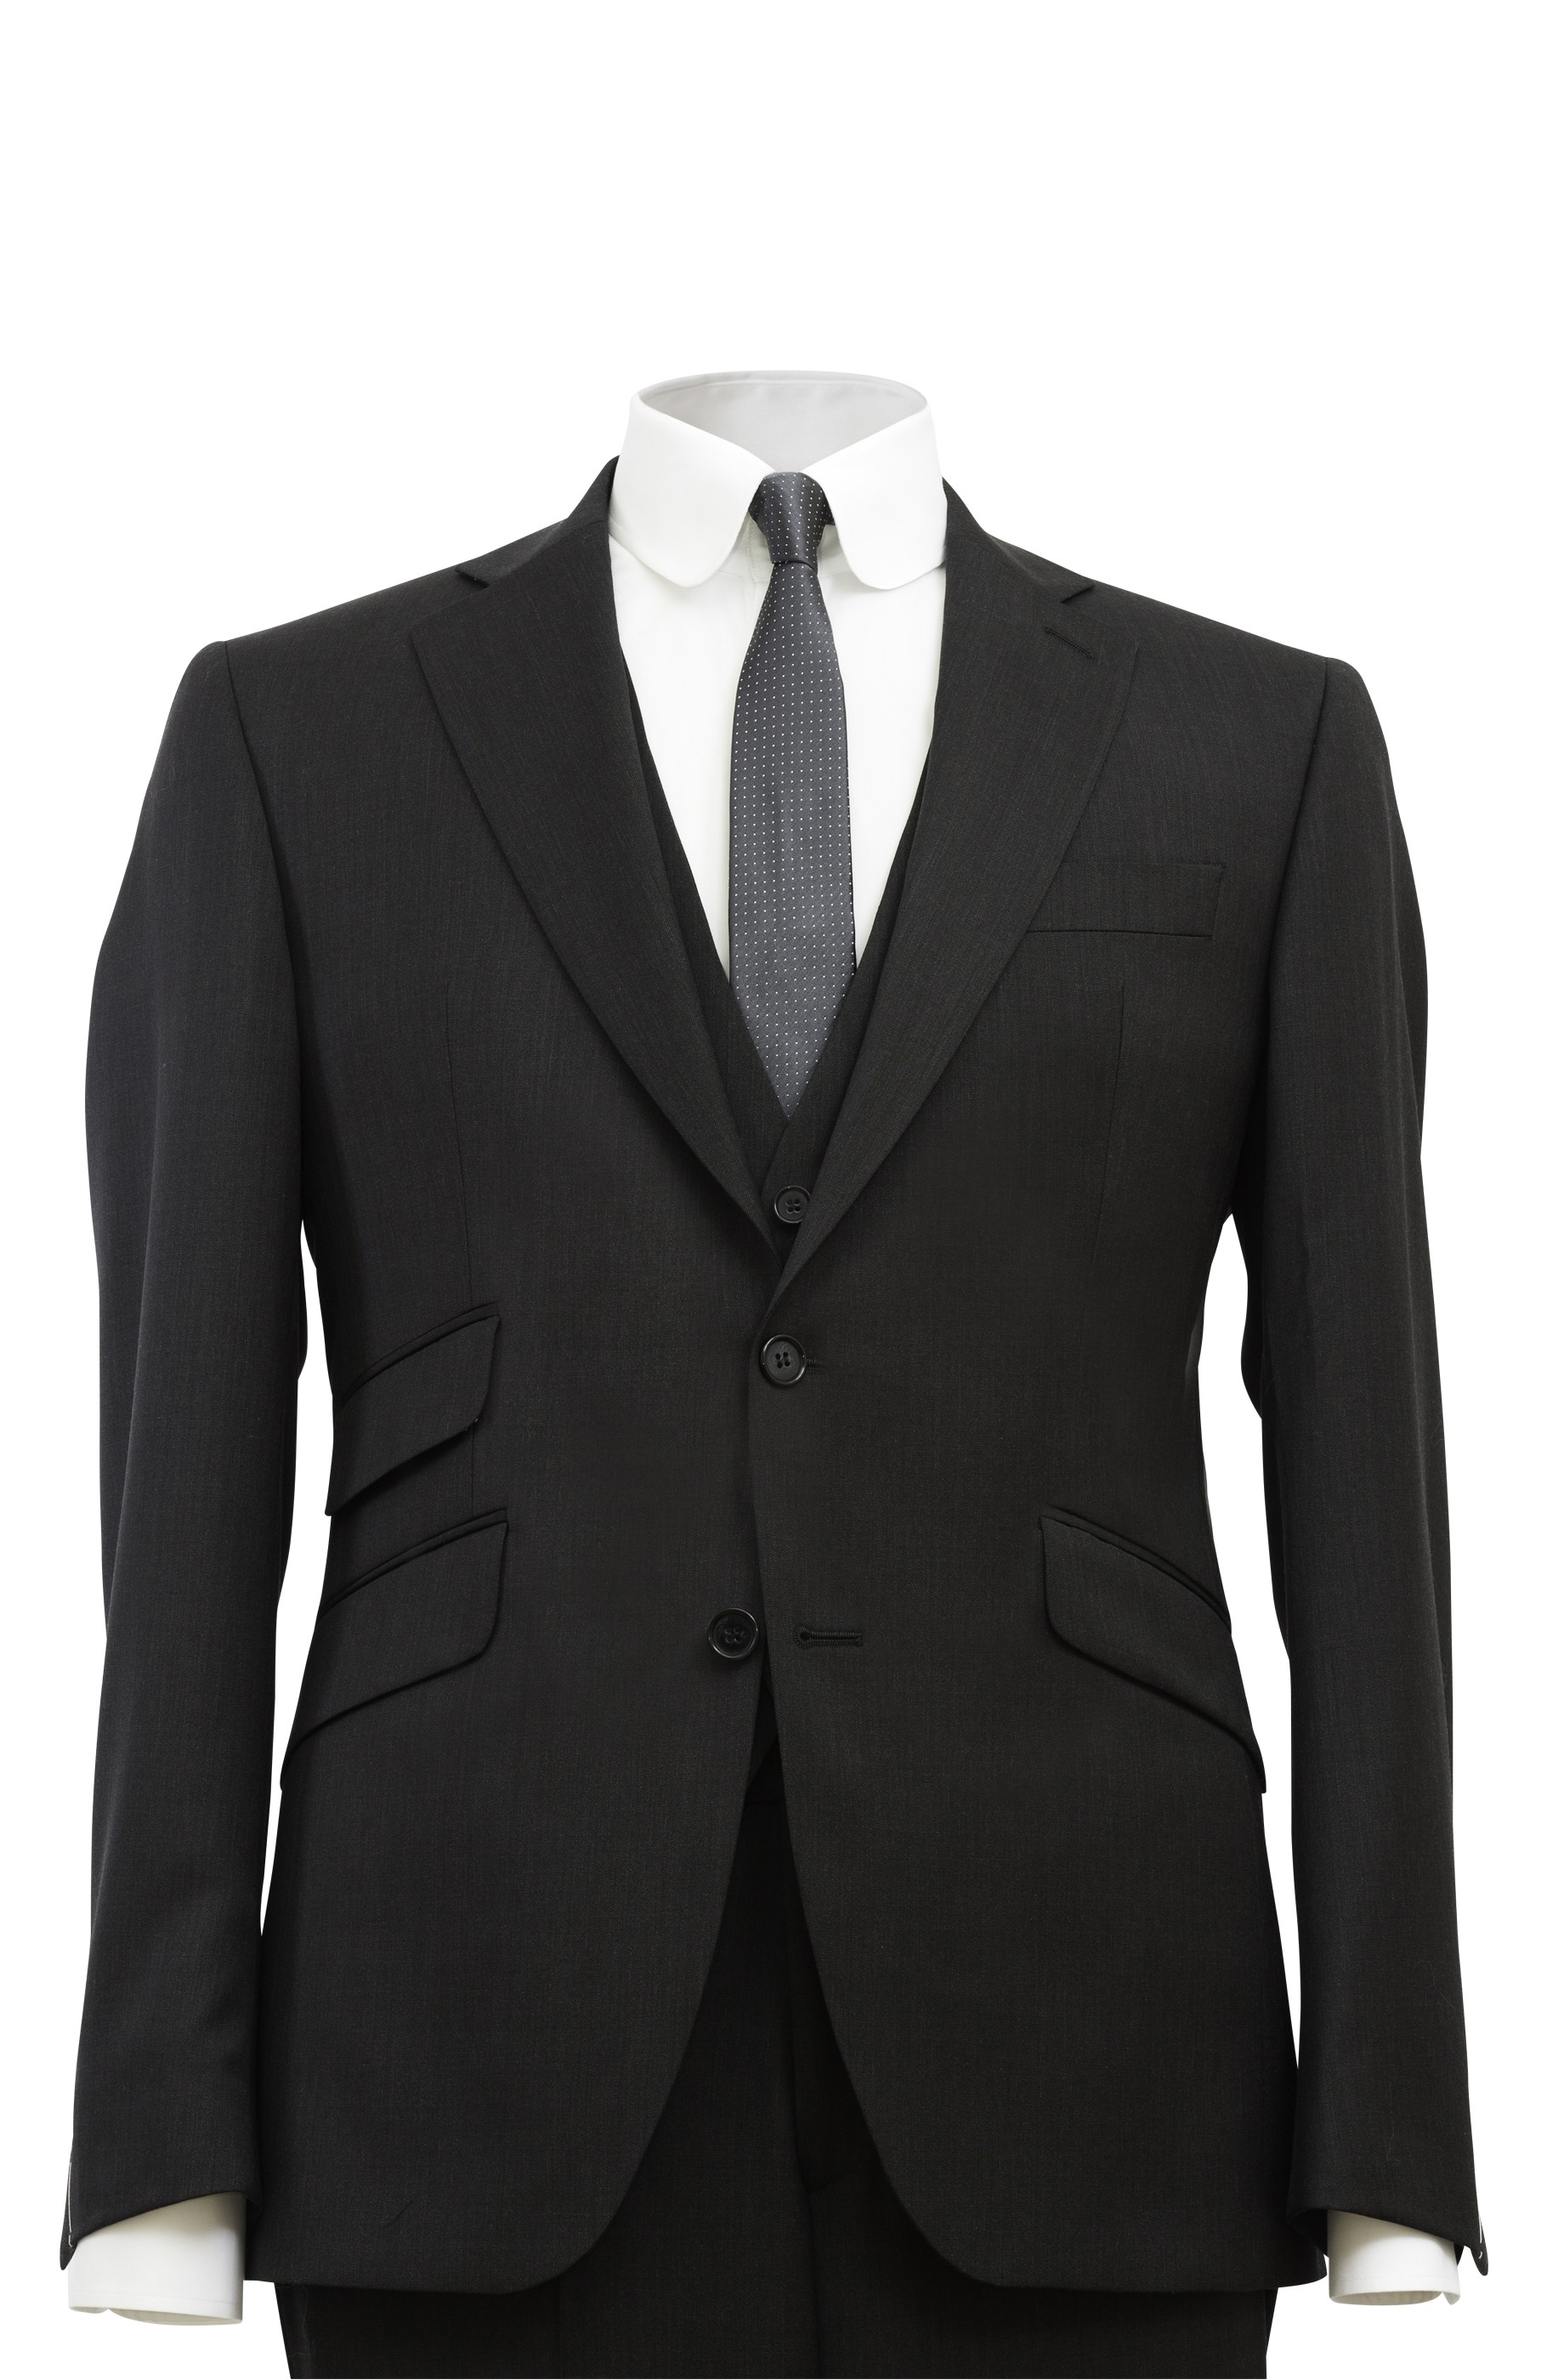 VENDÔME GREY SUIT